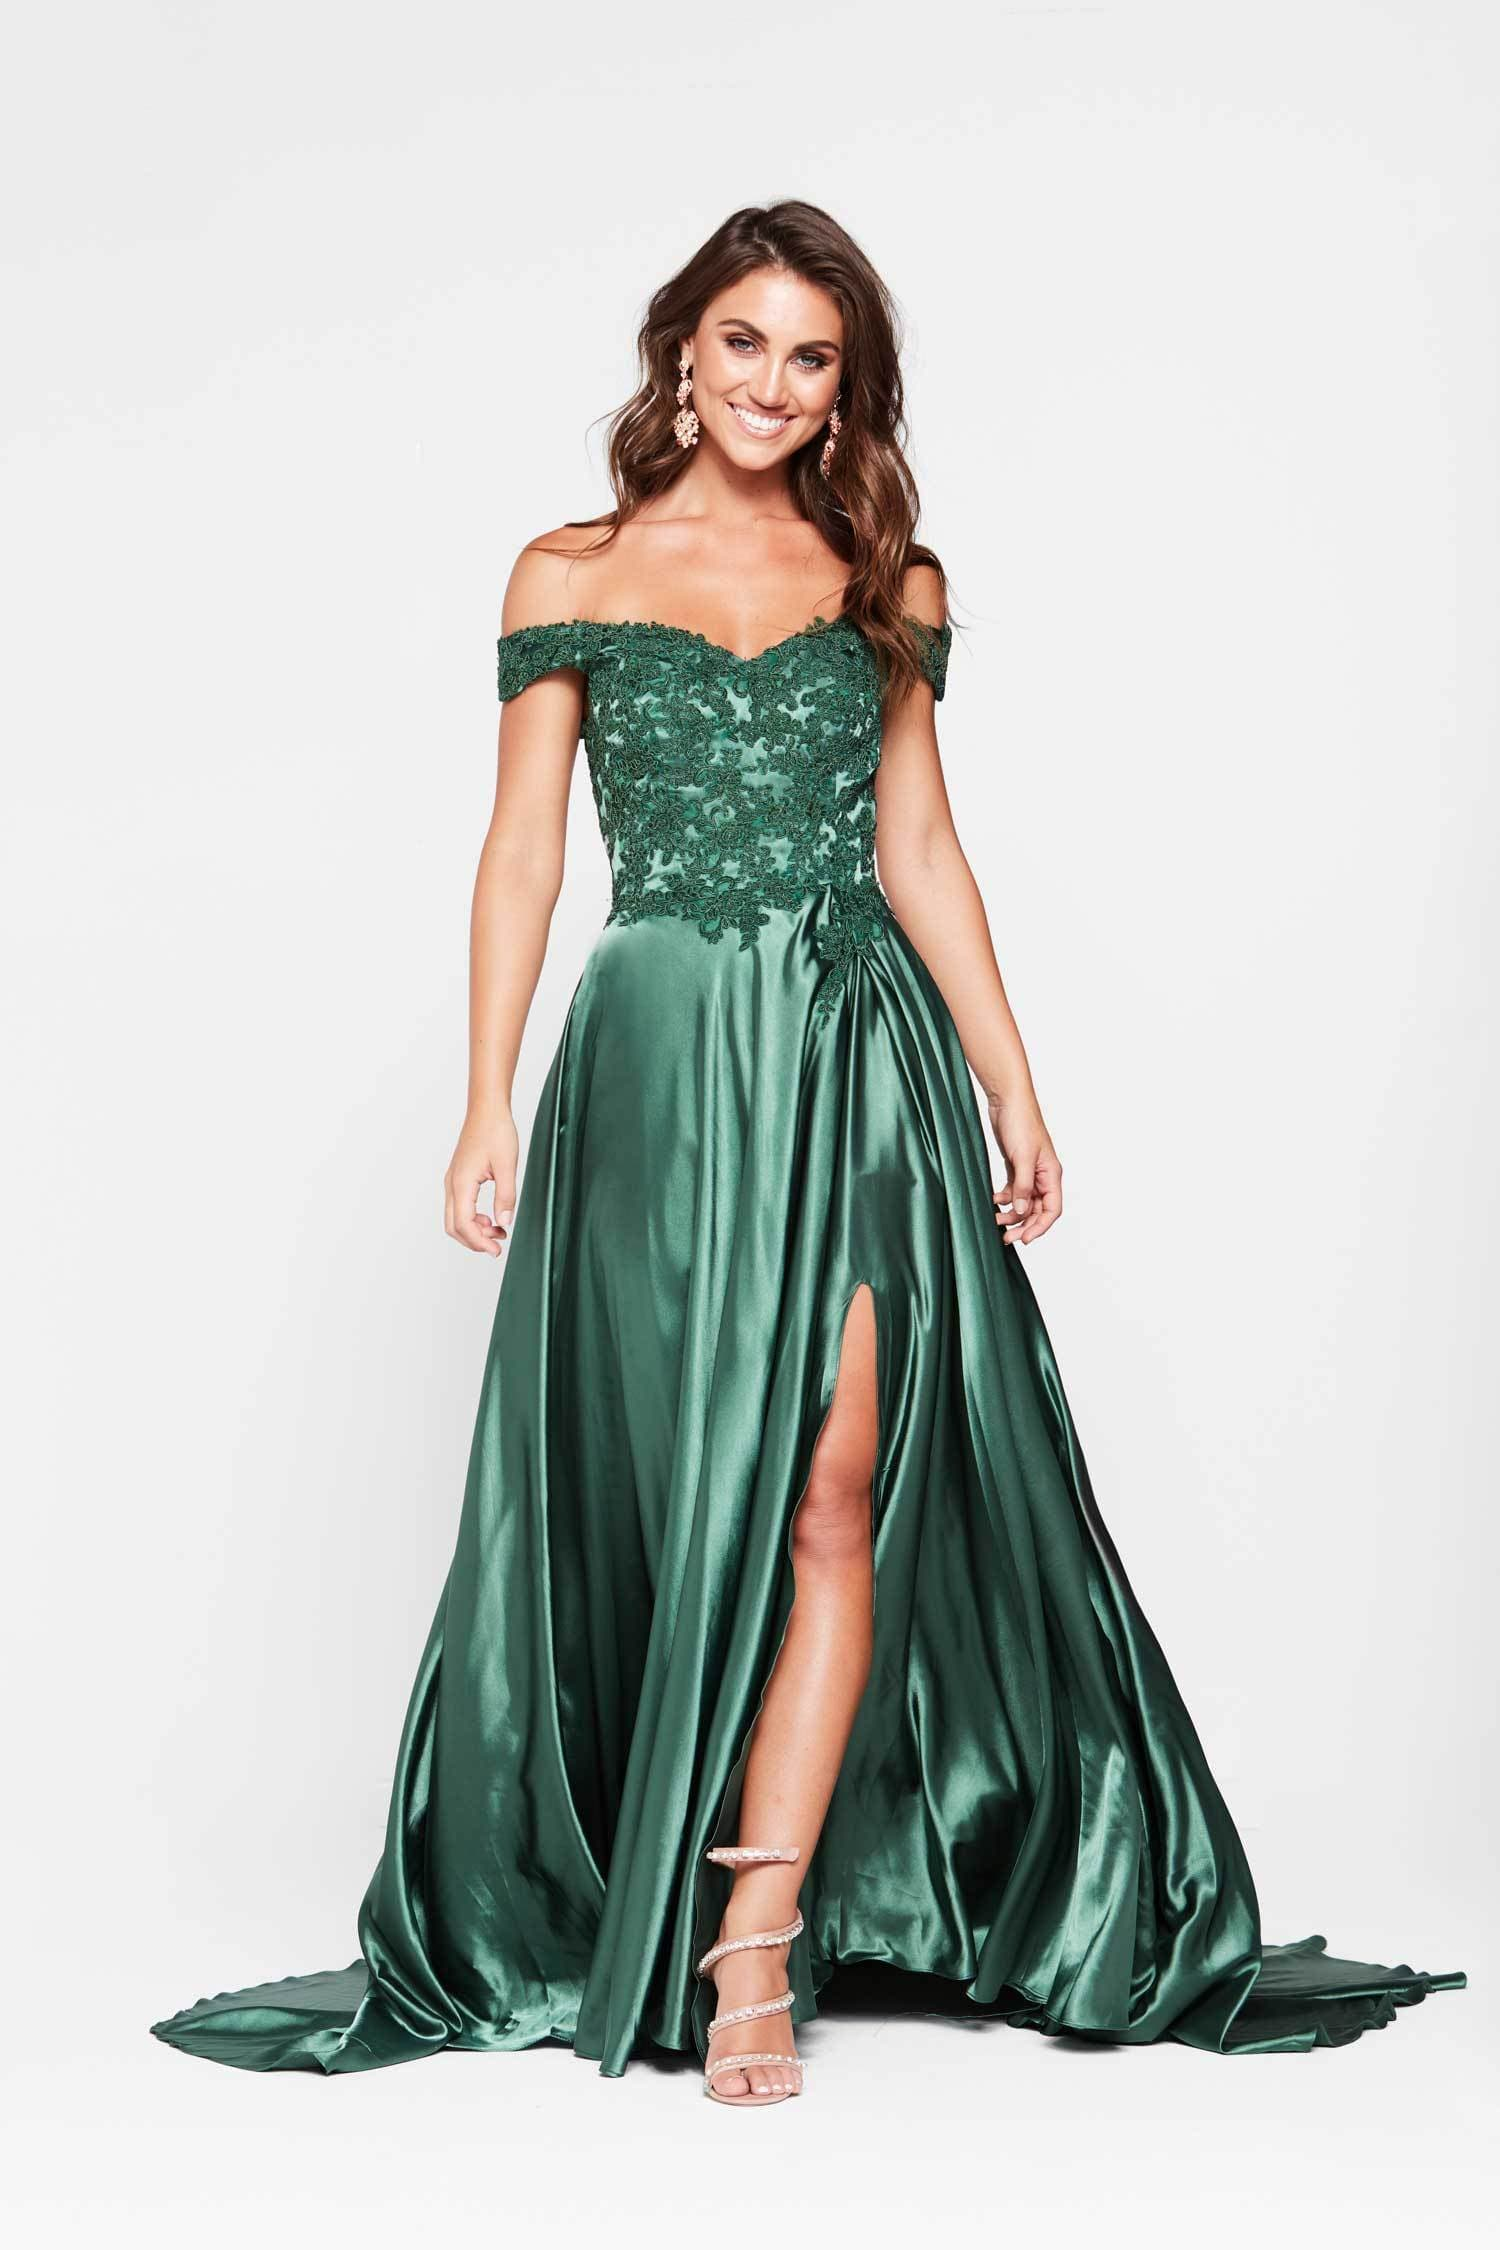 Freya Dress - Emerald Off Shoulder Lace Satin Split Full Length Gown